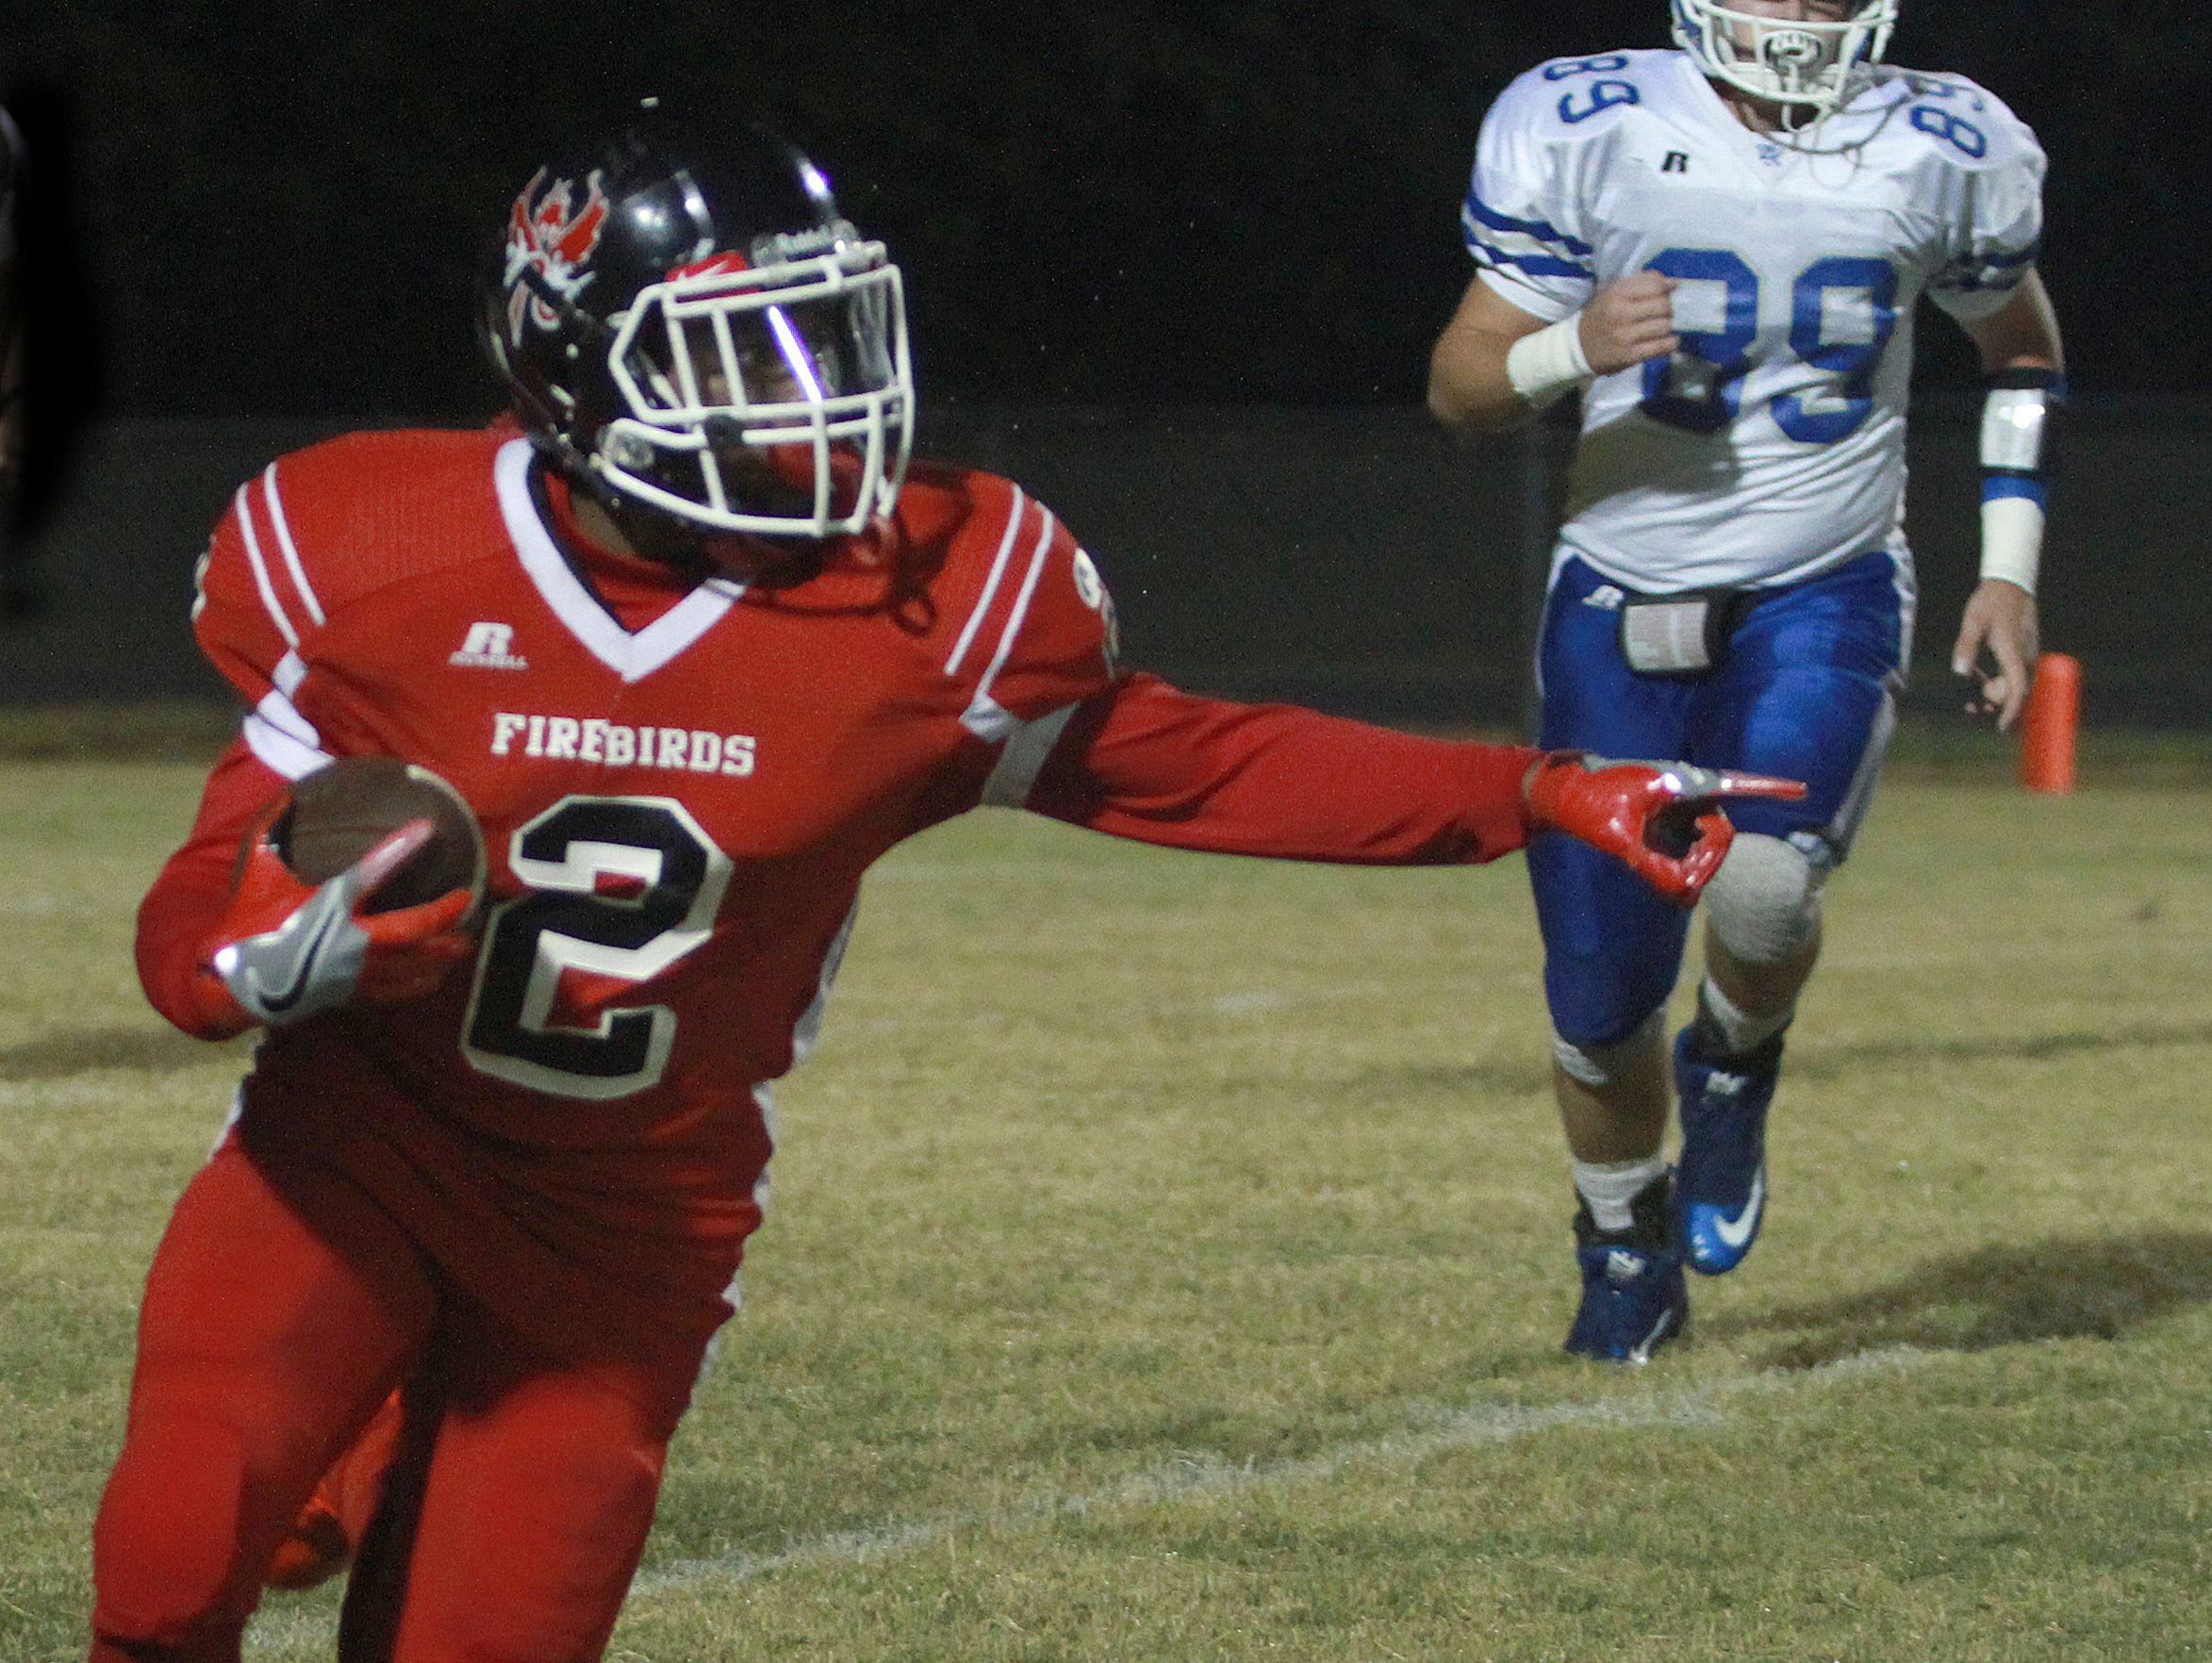 Pearl-Cohn's Jimmyrious Parker fields a punt and points for blockers in Nashville, TN on Fri. Oct. 14, 2016.